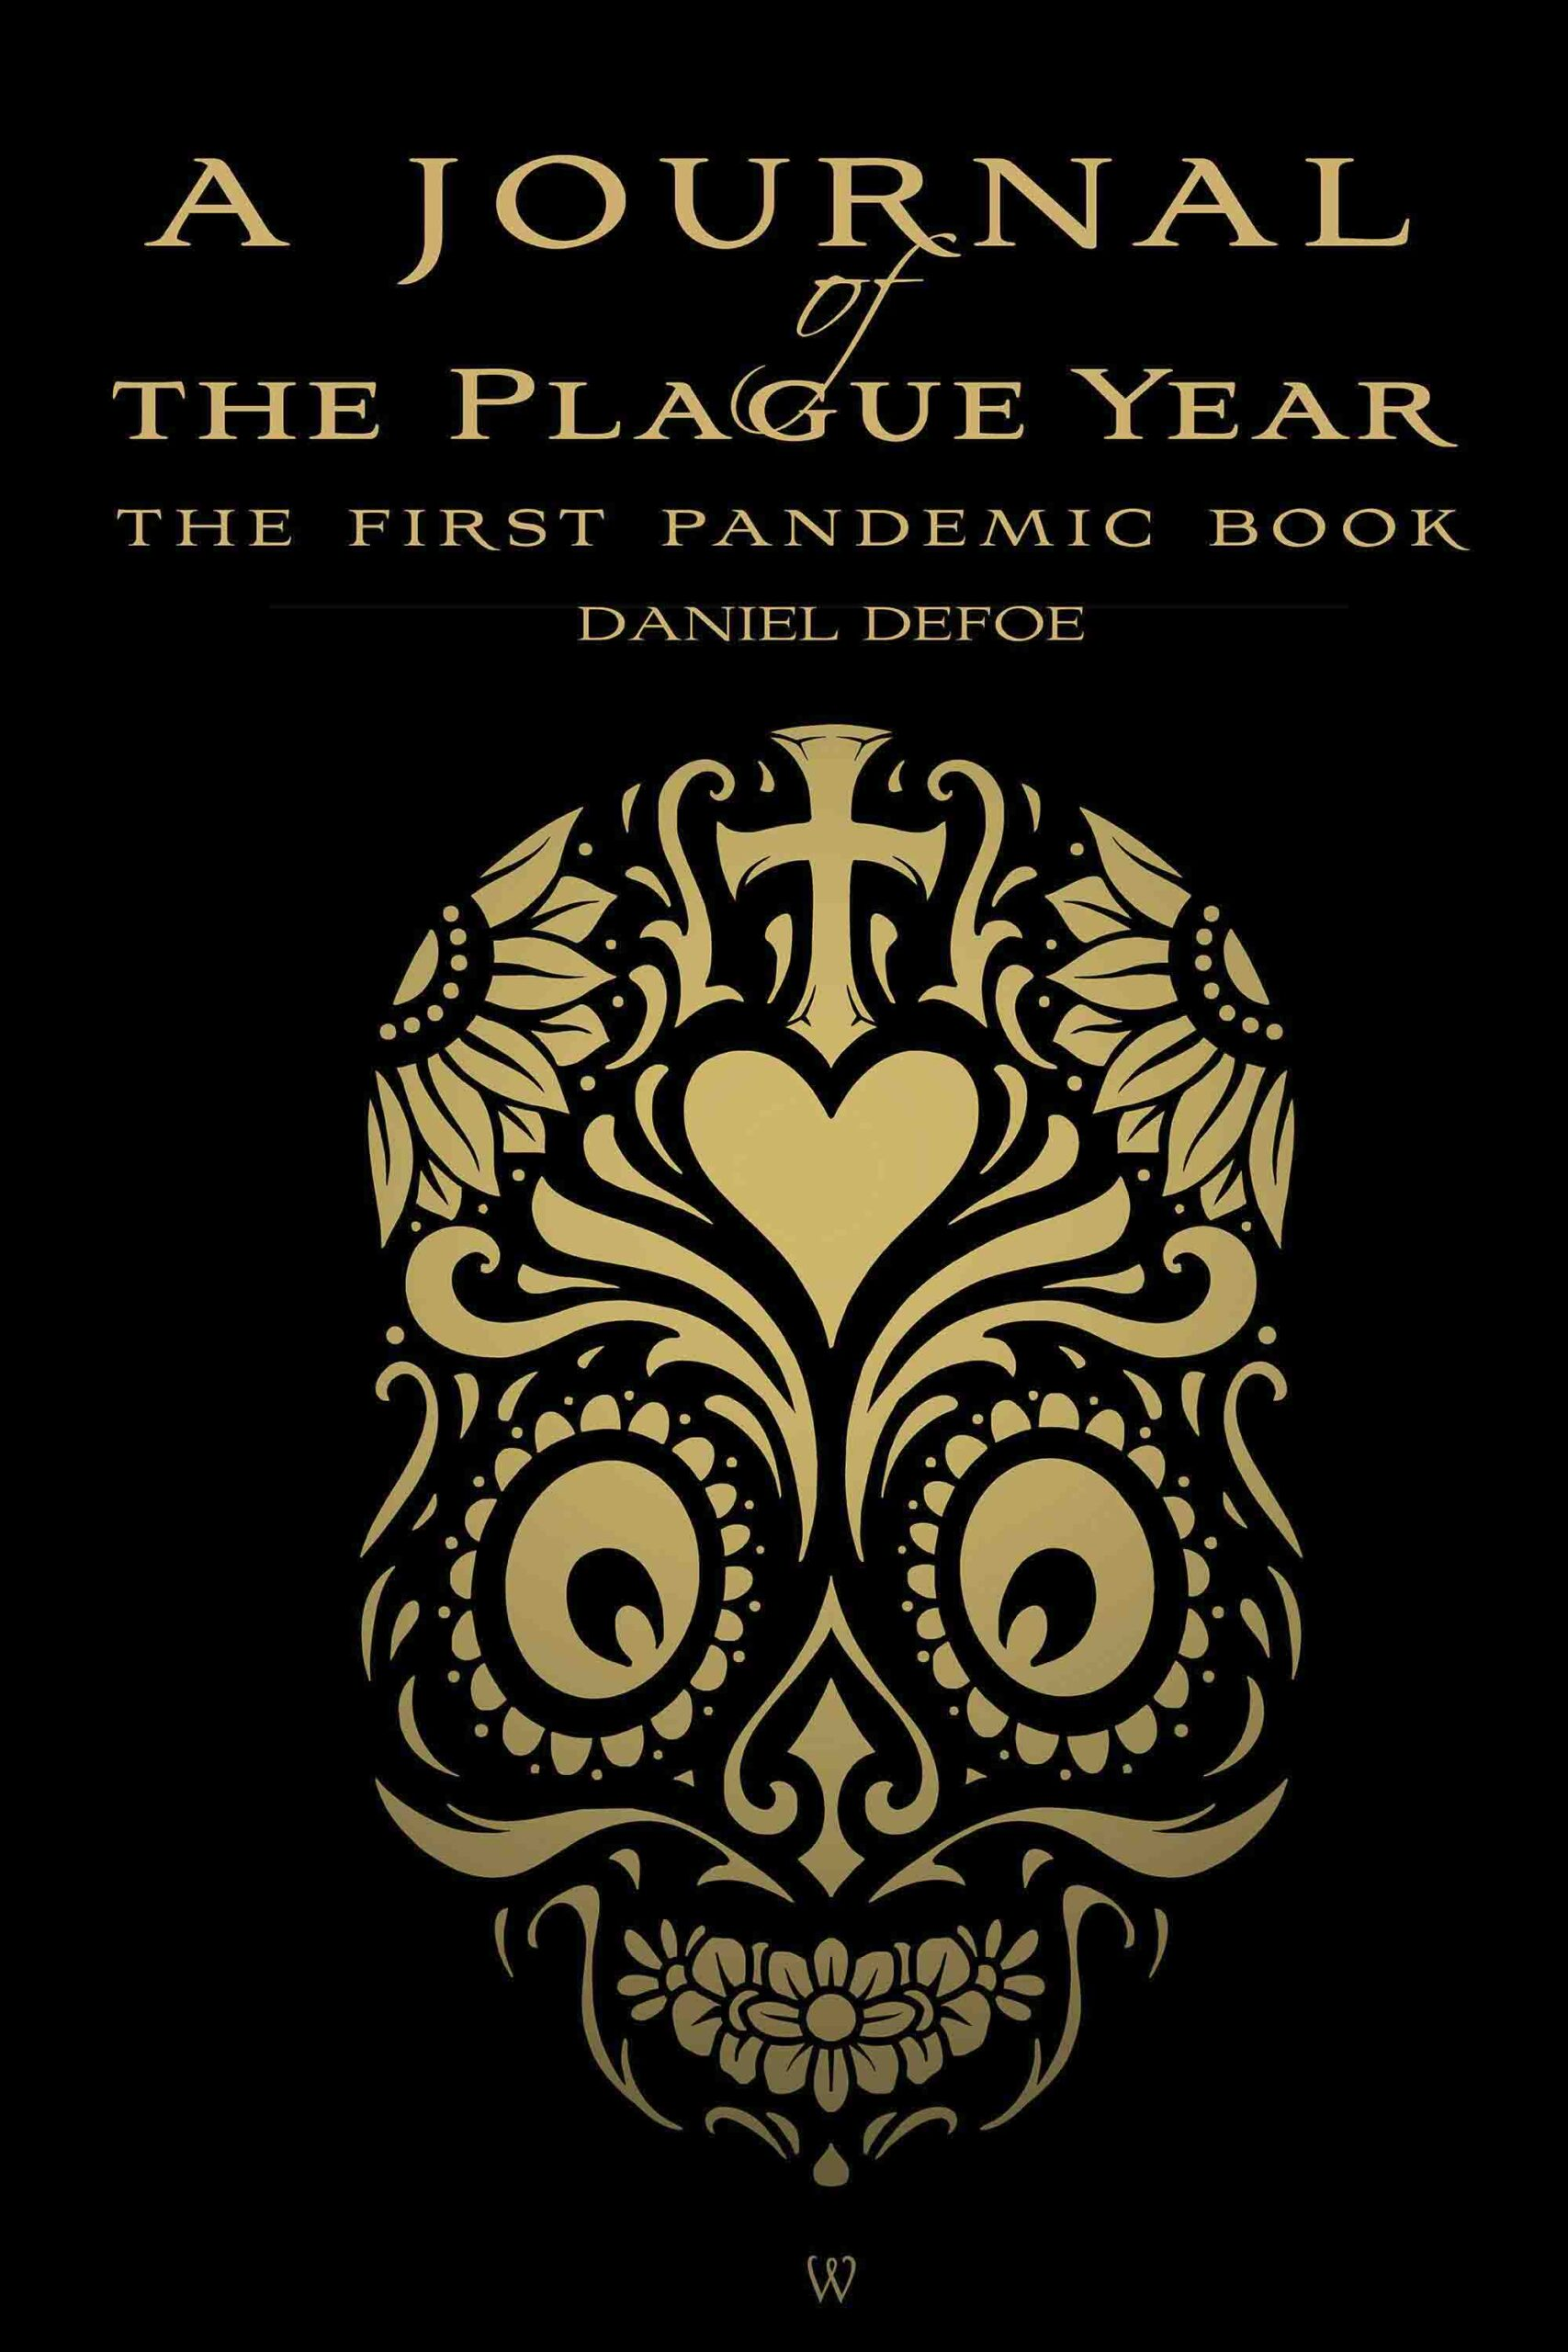 A Journal of the Plague Year (Wisehouse Classics Edition)